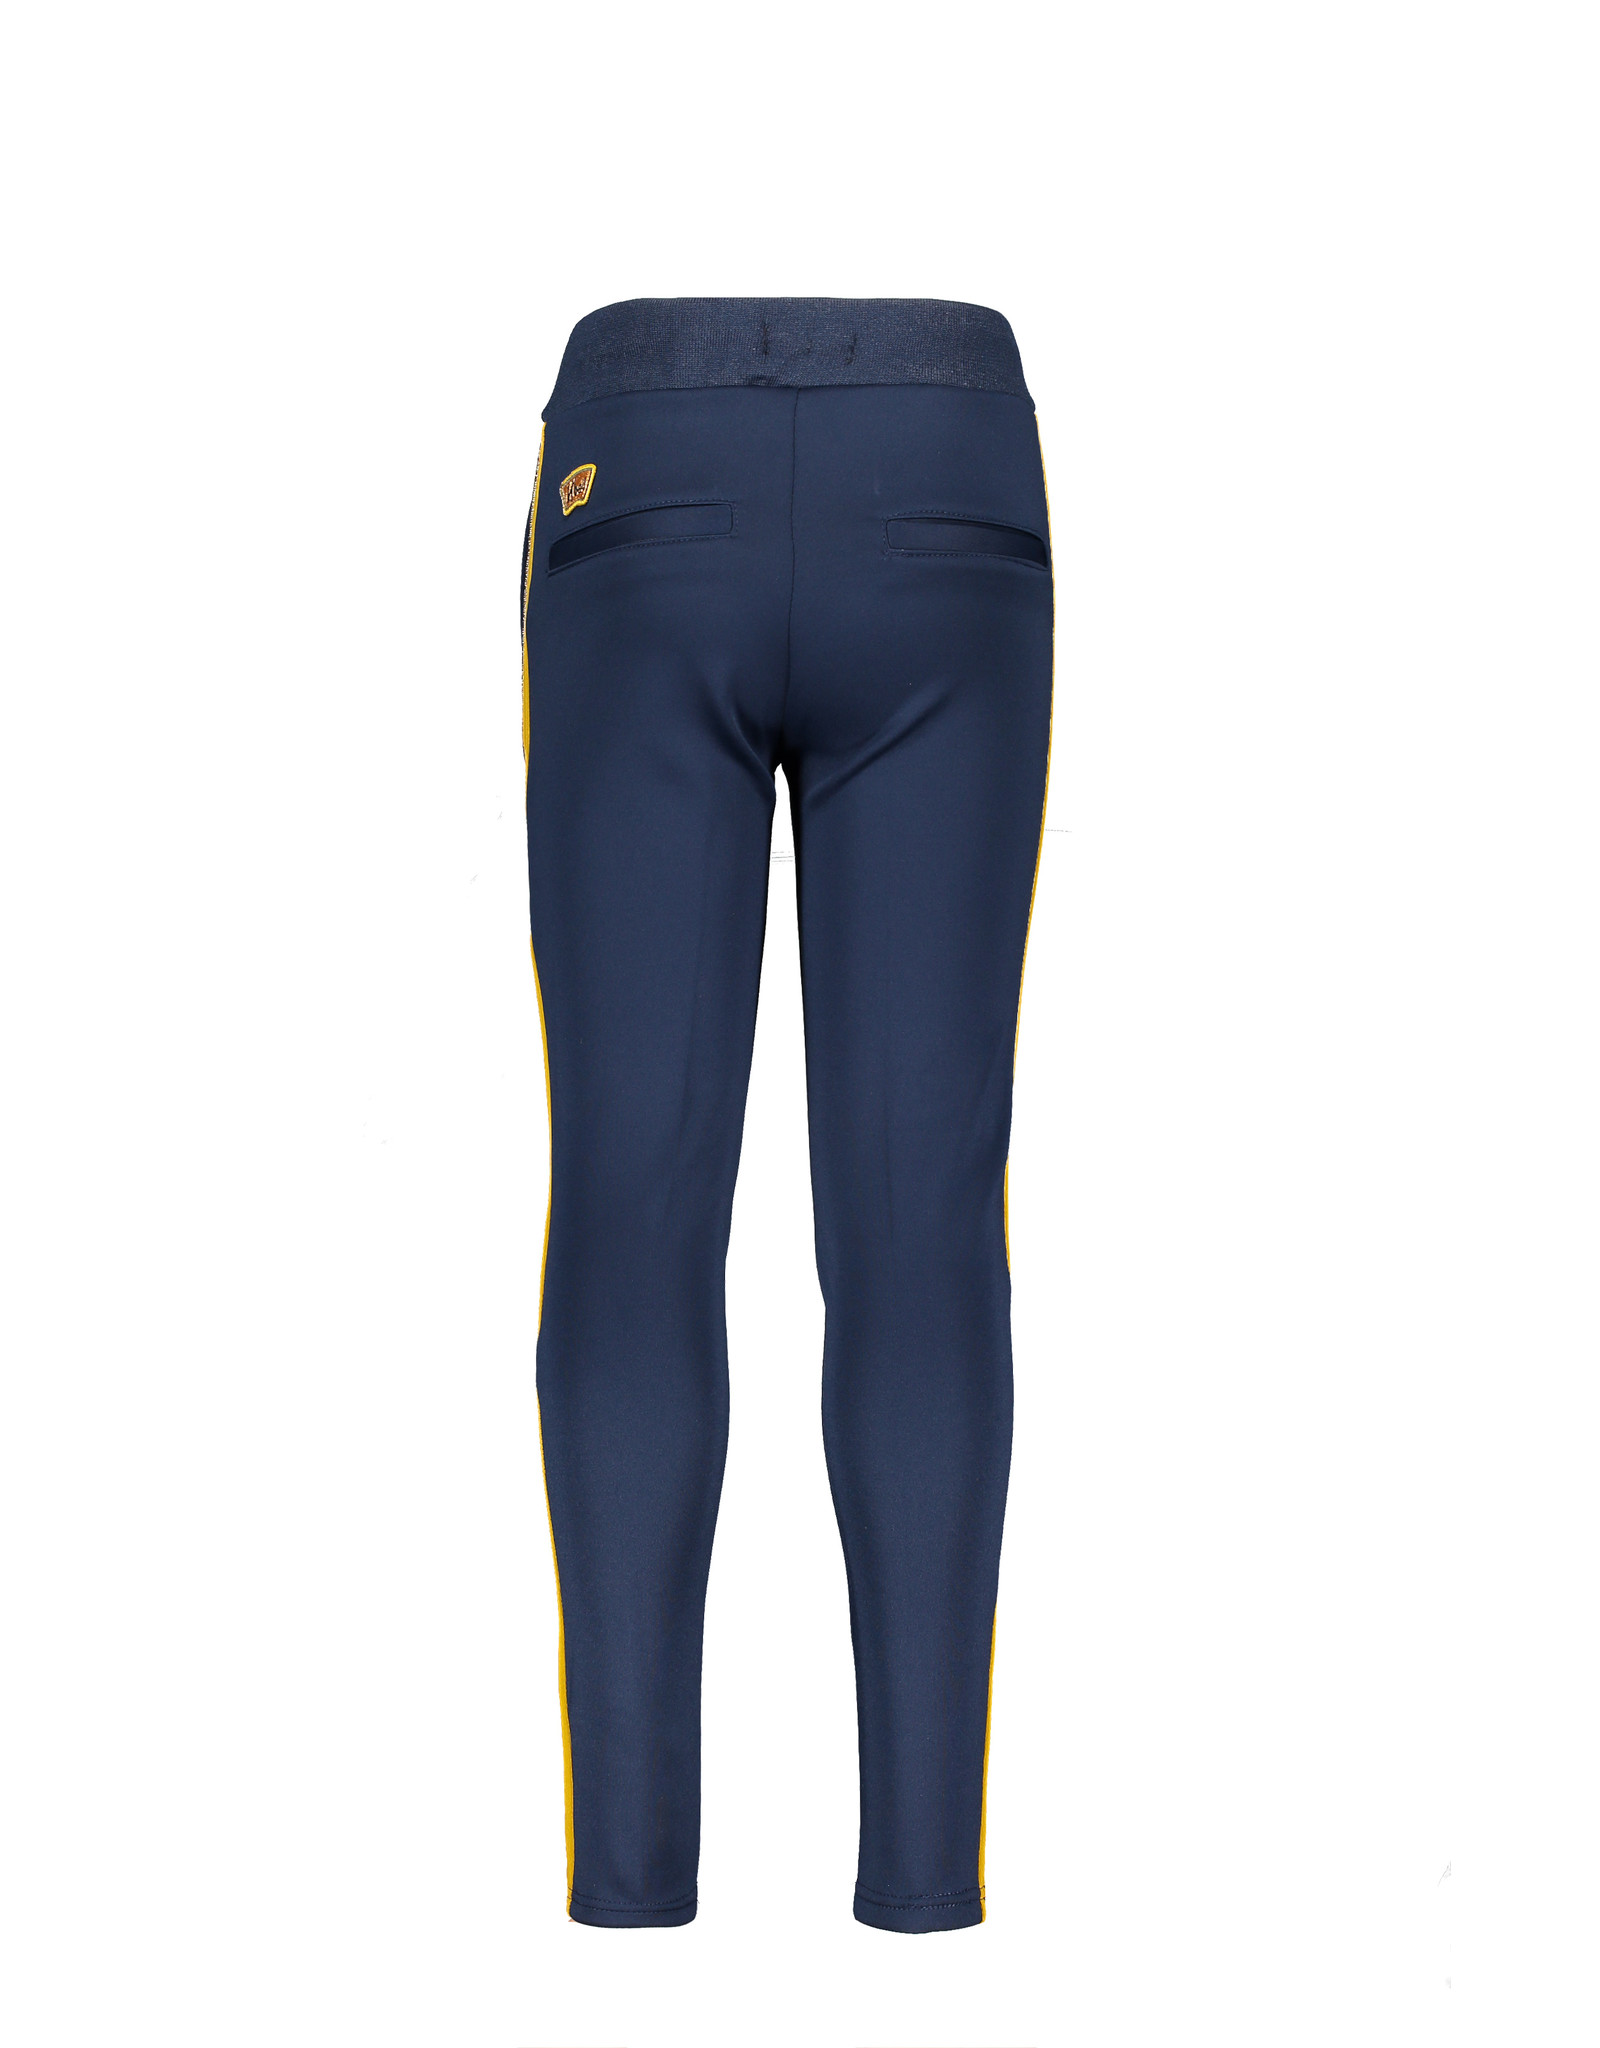 NoBell NoBell Secler B Technical Pants GREY NAVY